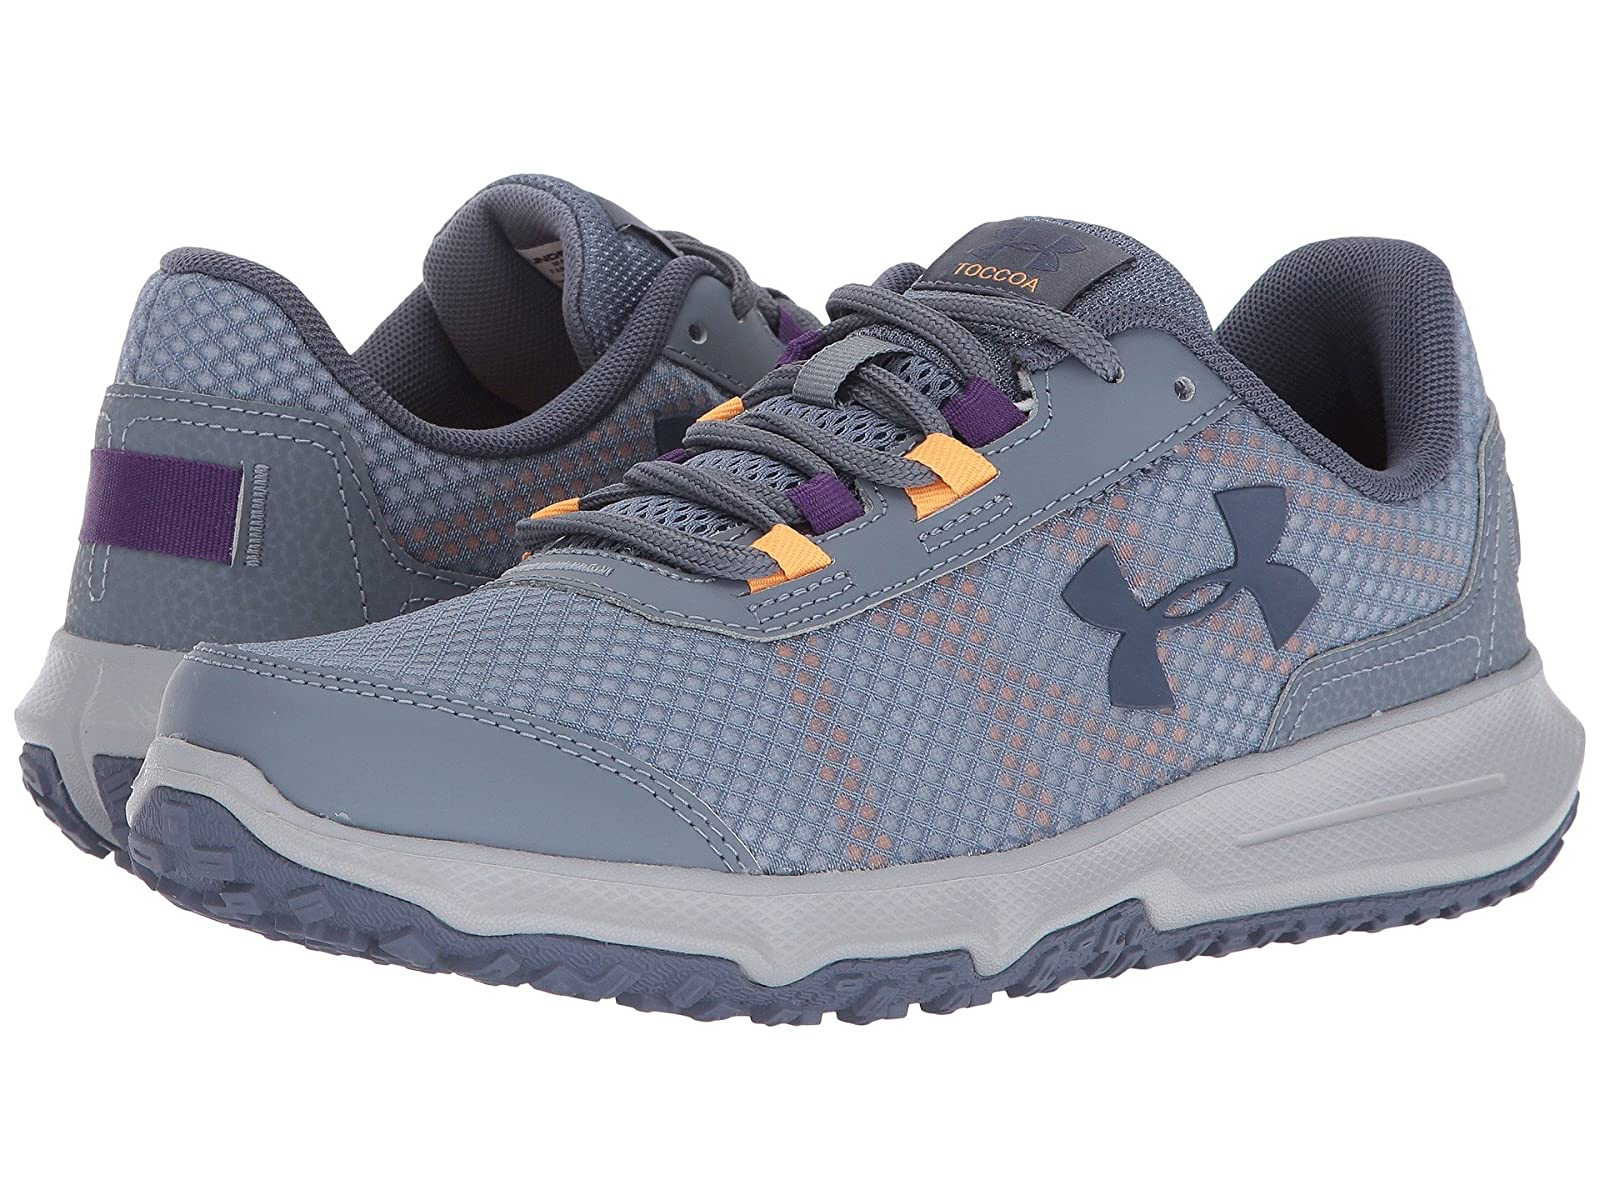 Under Armour ToccoaAtmospheric grades have affordable shoes